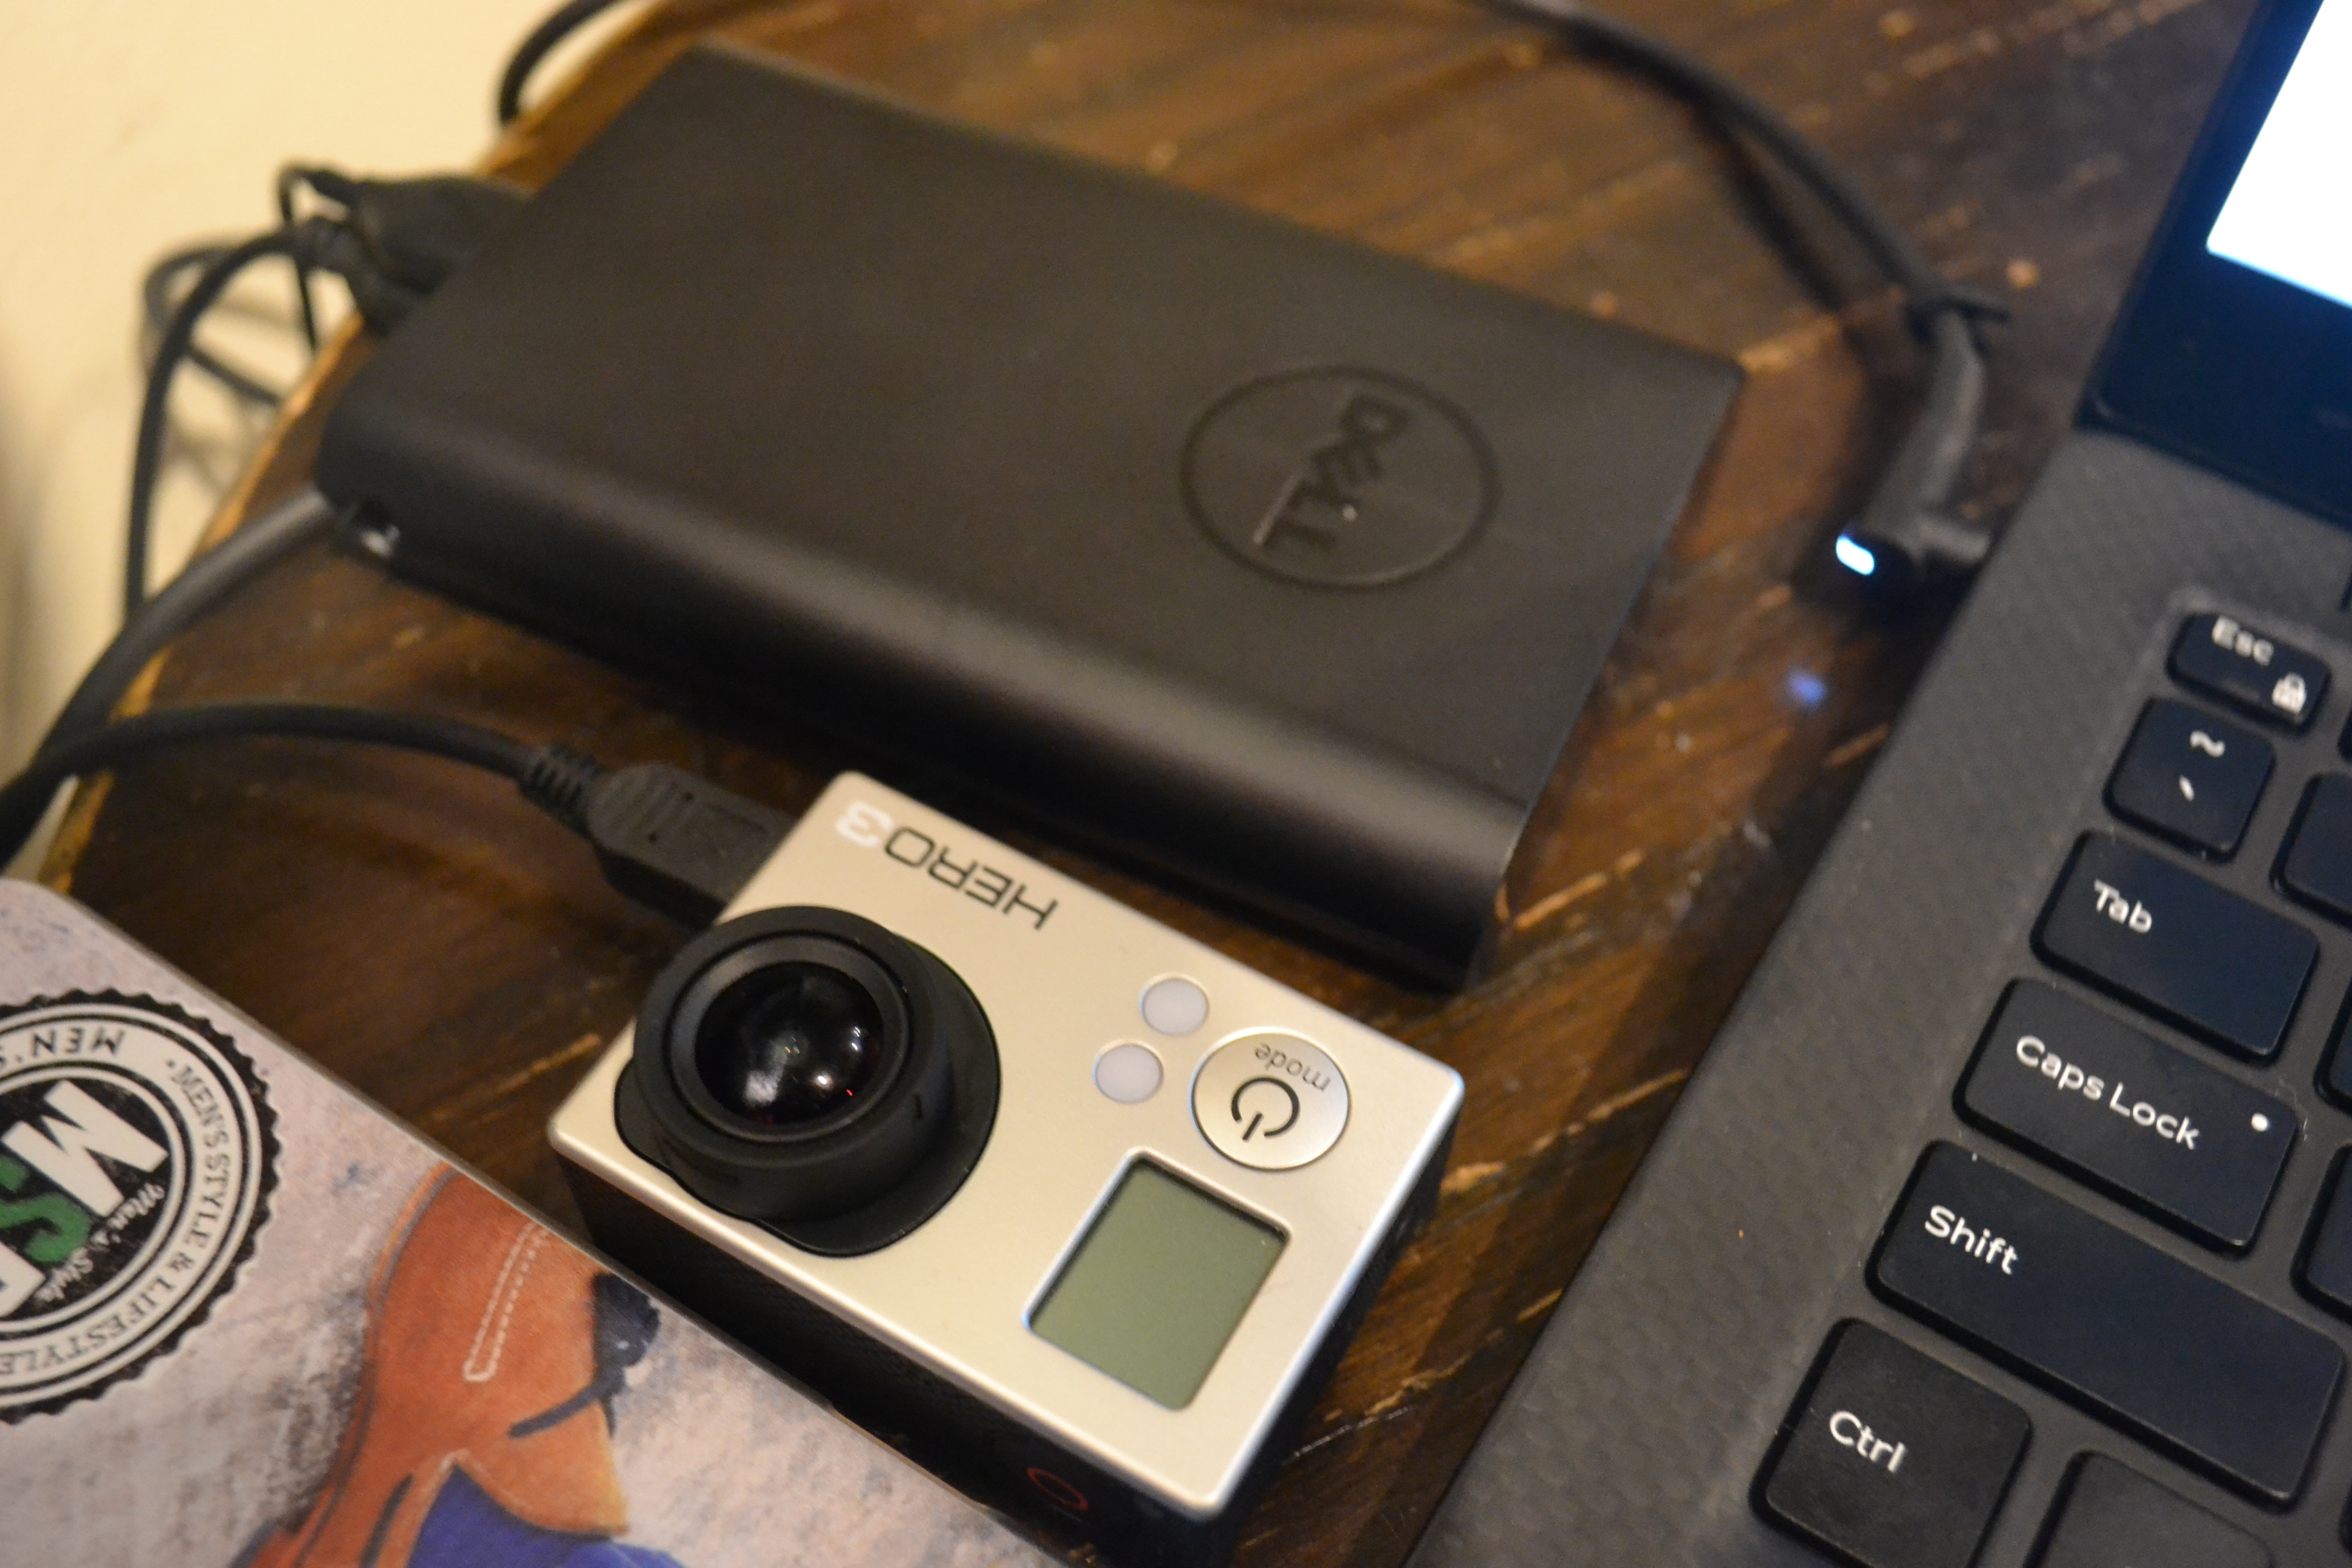 Dell Power Companion